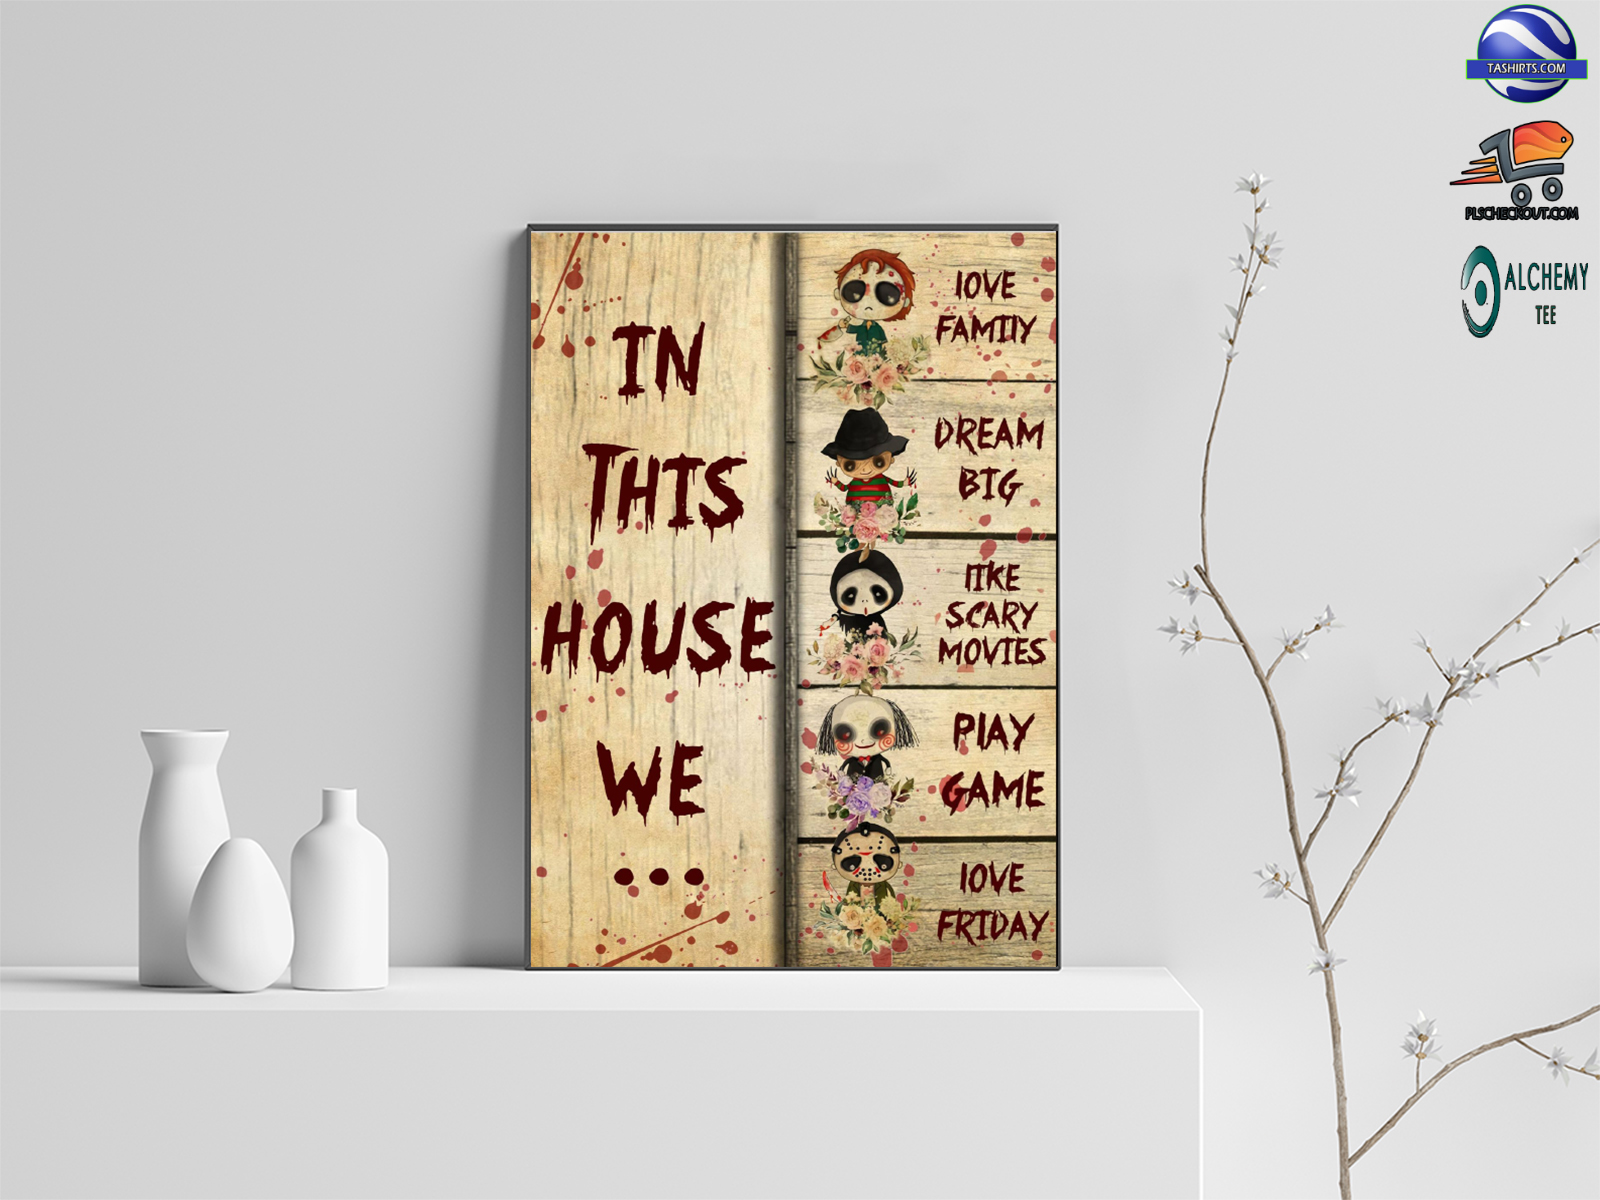 Halloween in this house we love family dream big like scary movies play game love friday poster